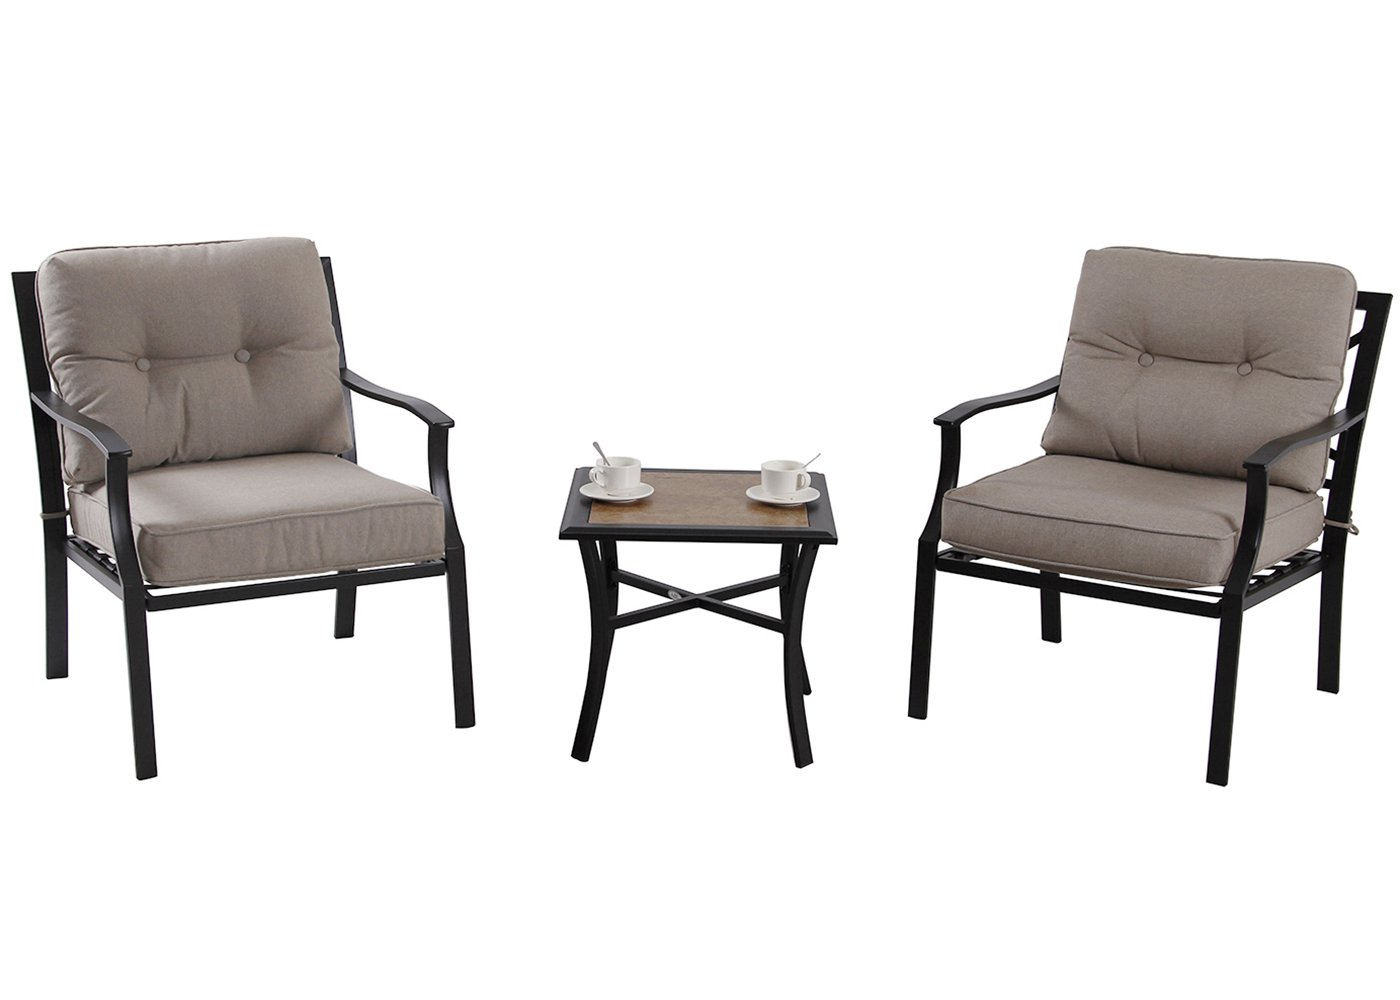 PHI VILLA Patio 3 PC Cushioned Conversation Set Side Table Padded Chairs Outdoor Sectional Furniture, Beige